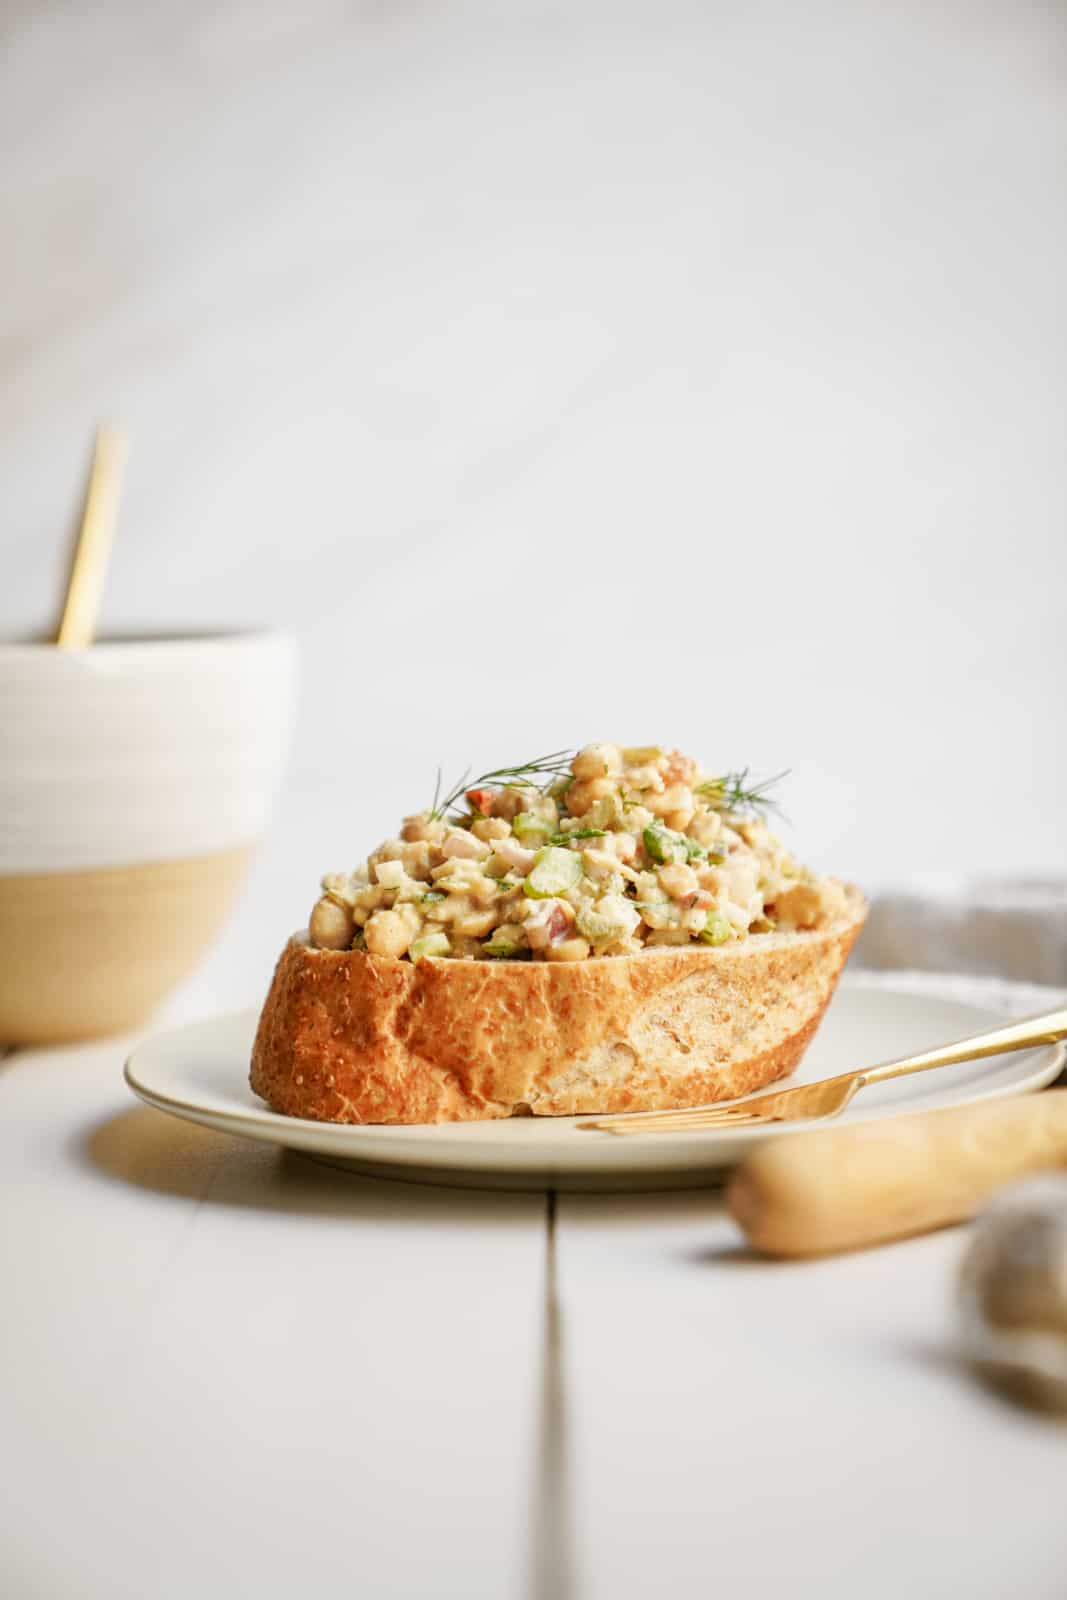 Mashed Chickpea Salad sitting on a piece of bread on a plate